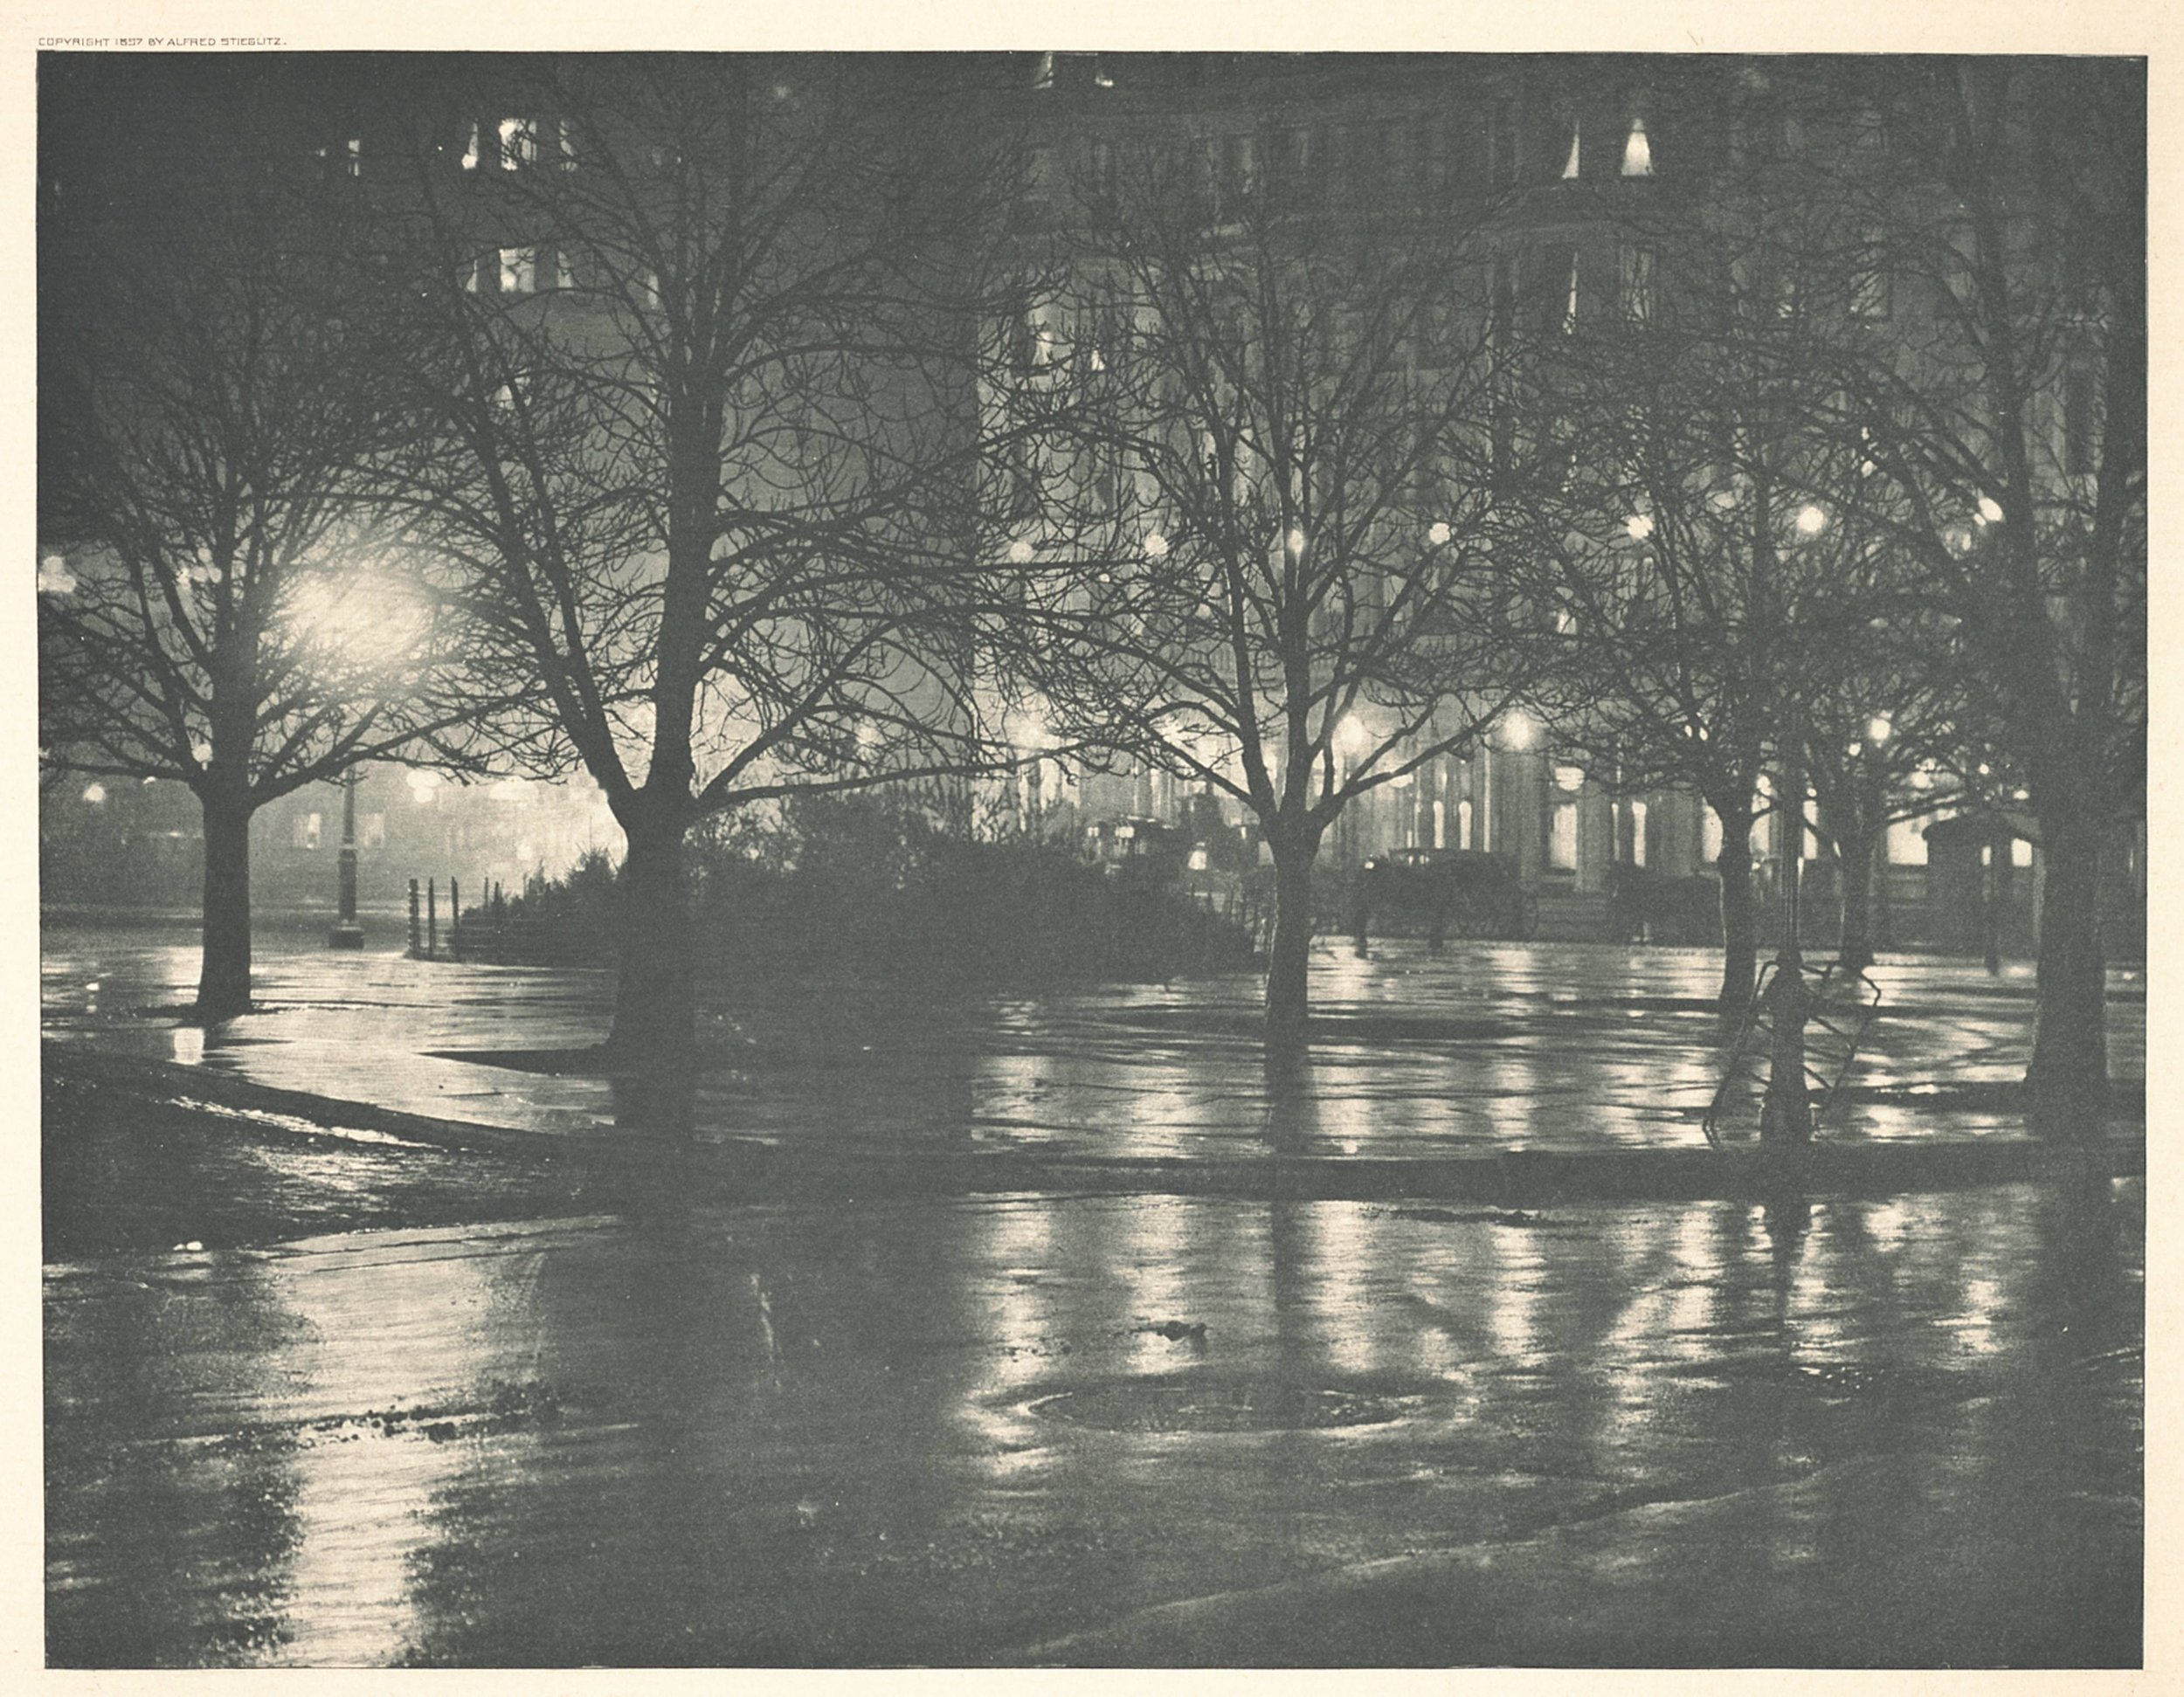 Reflections, New York at Night by Alfred Steiglitz All Rights Reserved